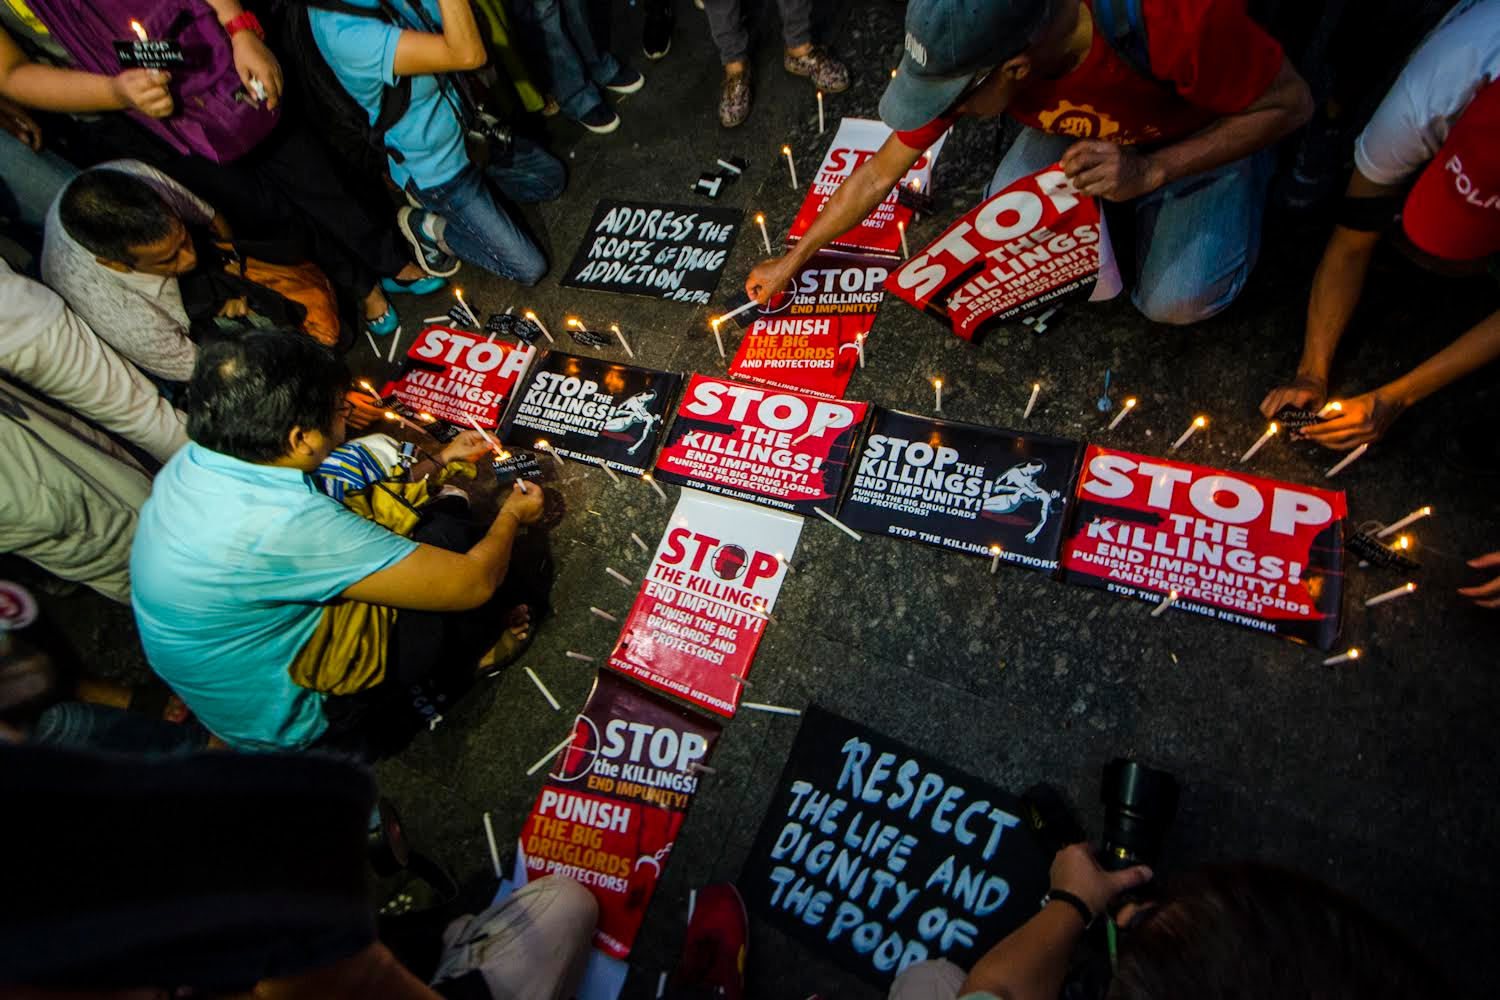 injustice in the philippines Injustice is a quality relating to unfairness or undeserved outcomes the term may be applied in reference to a particular event or situation, or to a larger status quo  in western.